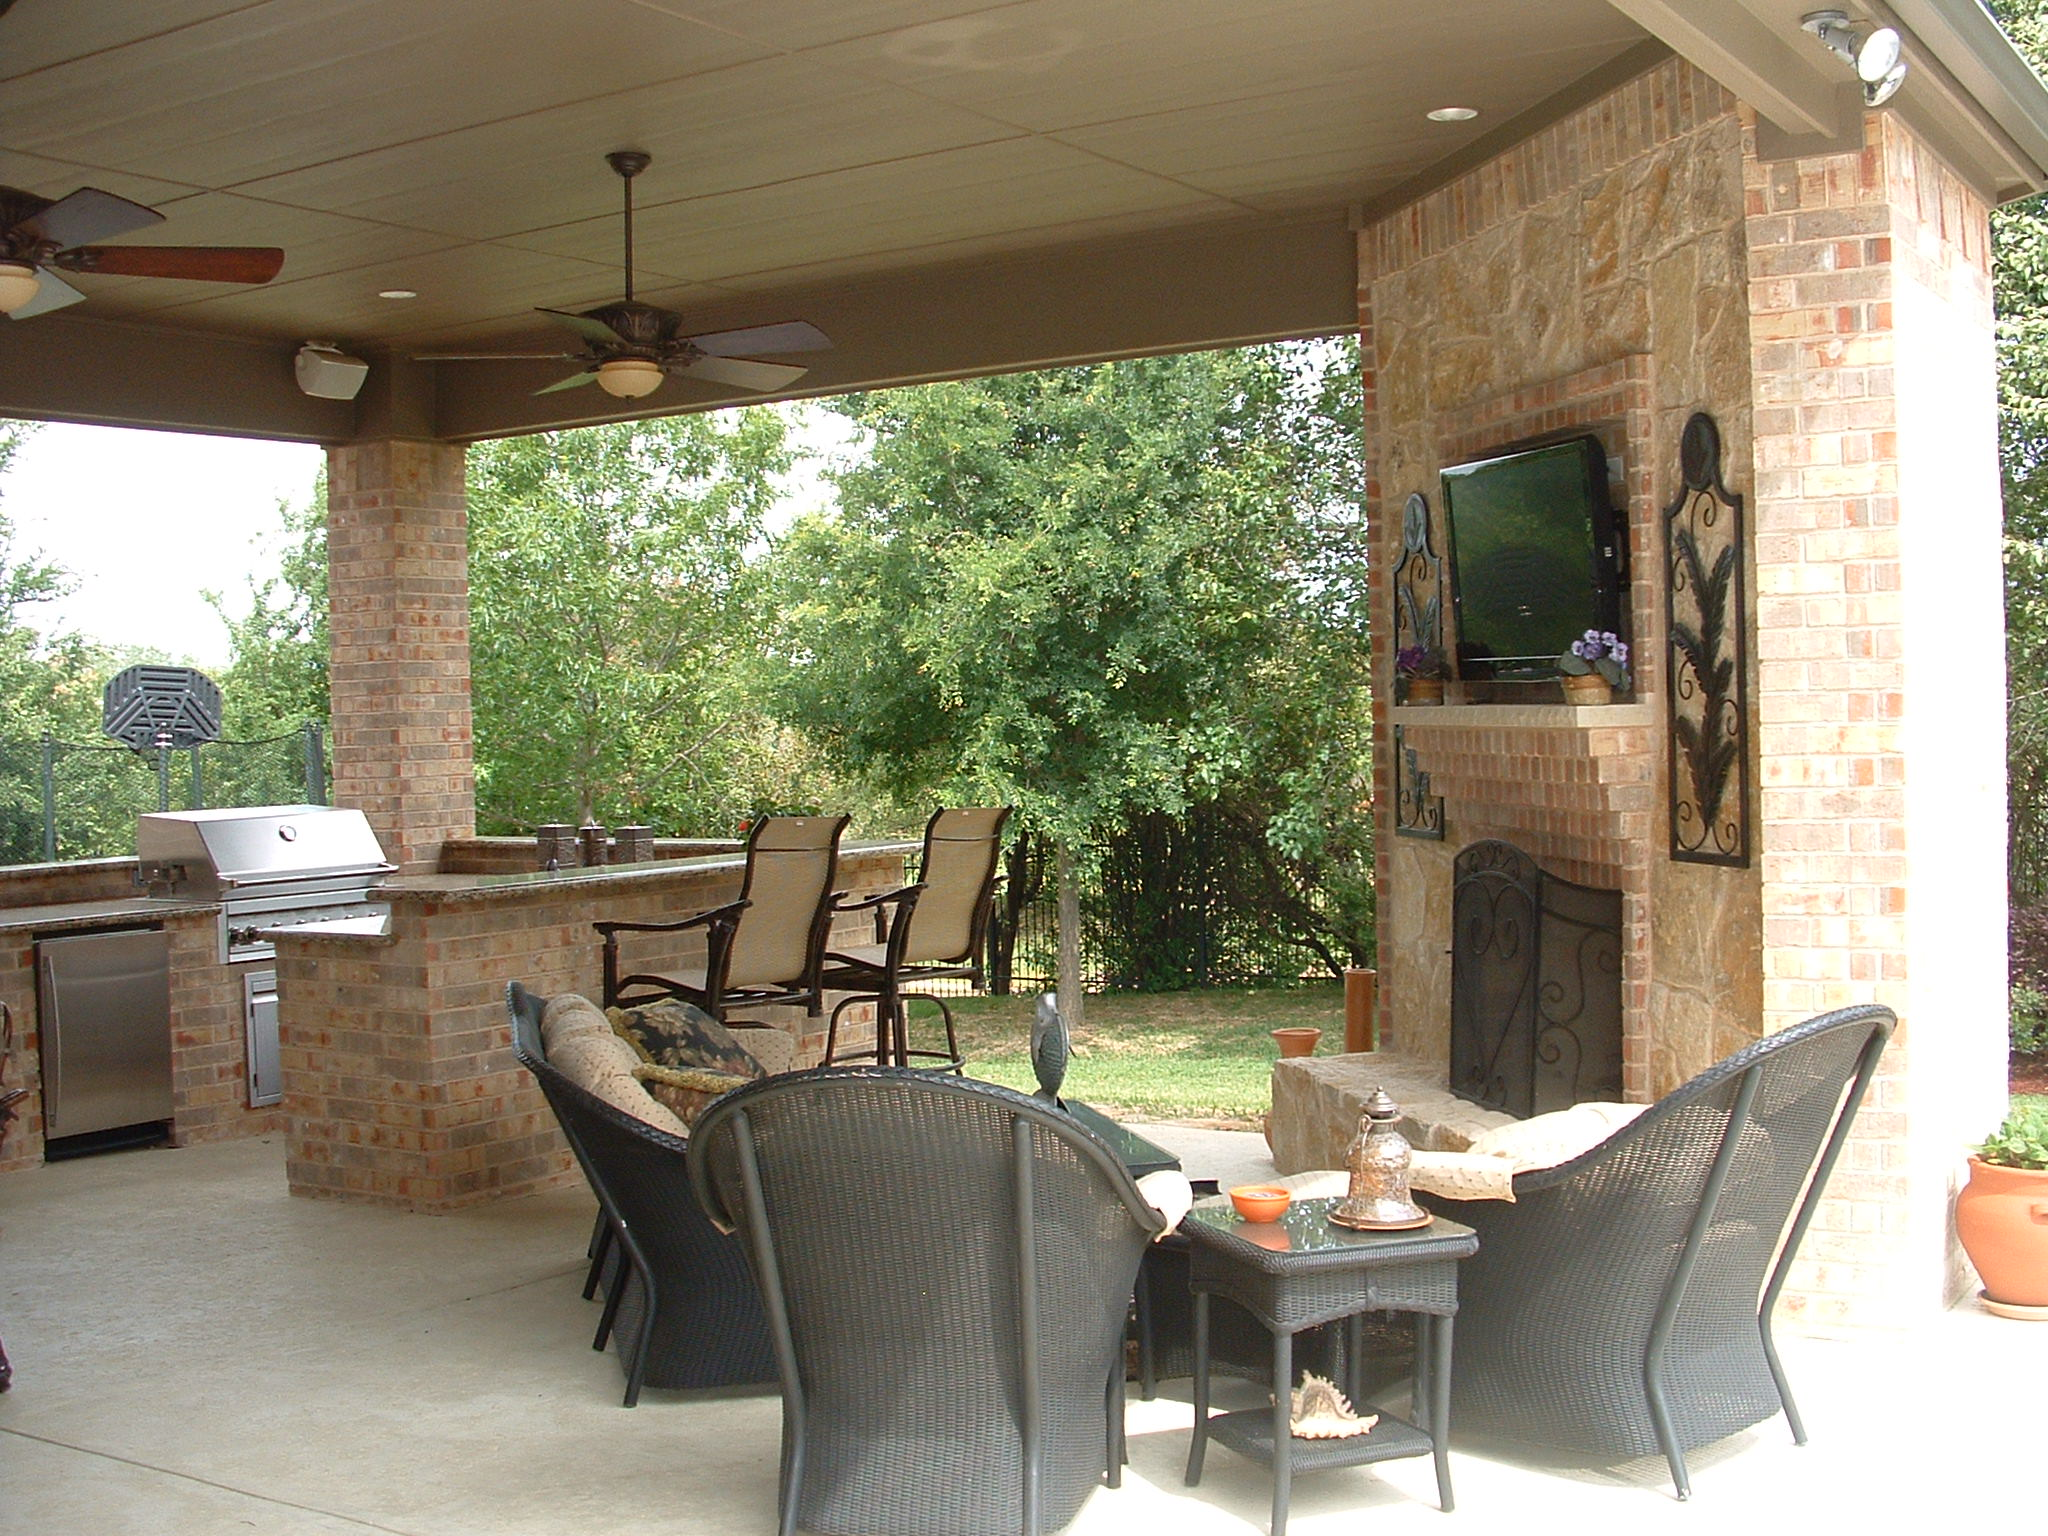 Kitchen Fireplace Design Ideas Part - 31: Nice Furniture For Outdoor Kitchen Design Ideas With Lavish Fireplace Mantel